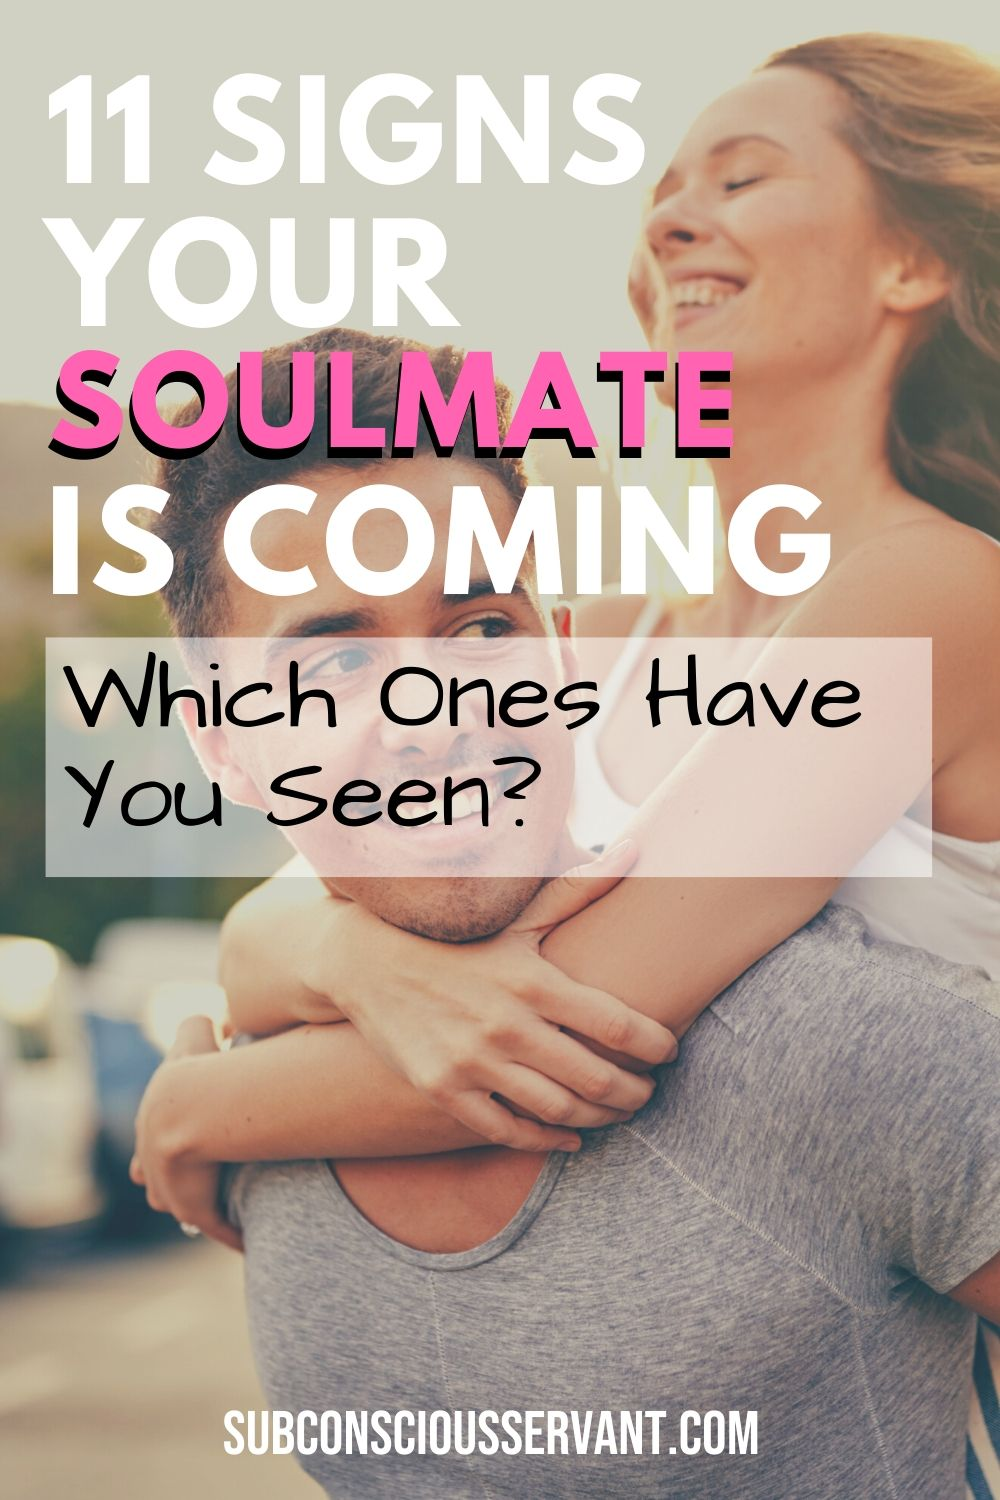 11 Signs Your Soulmate Is Coming